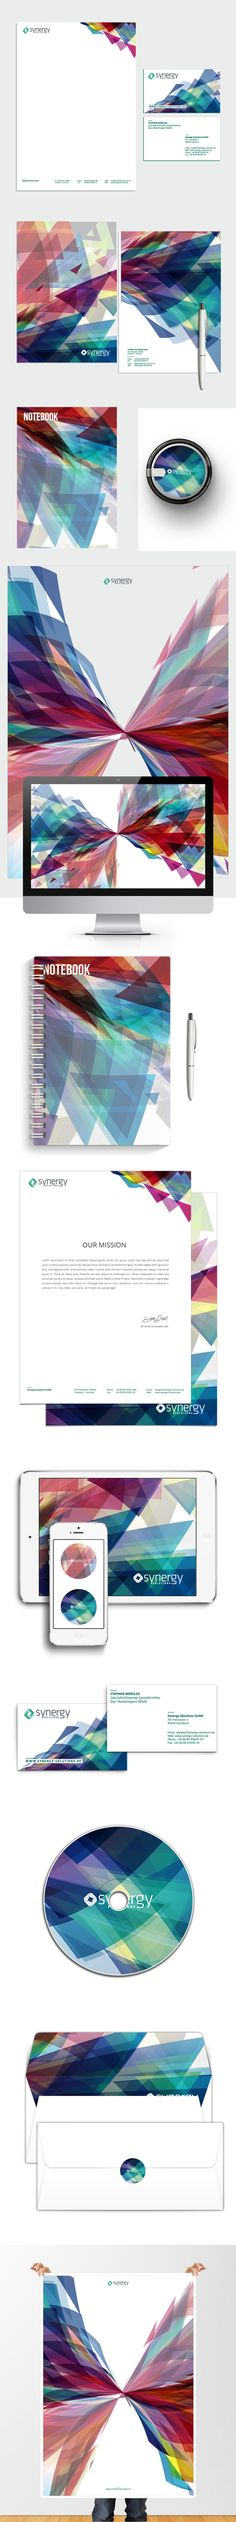 Synergy Branding by Firman Suci Ananda , via Behance